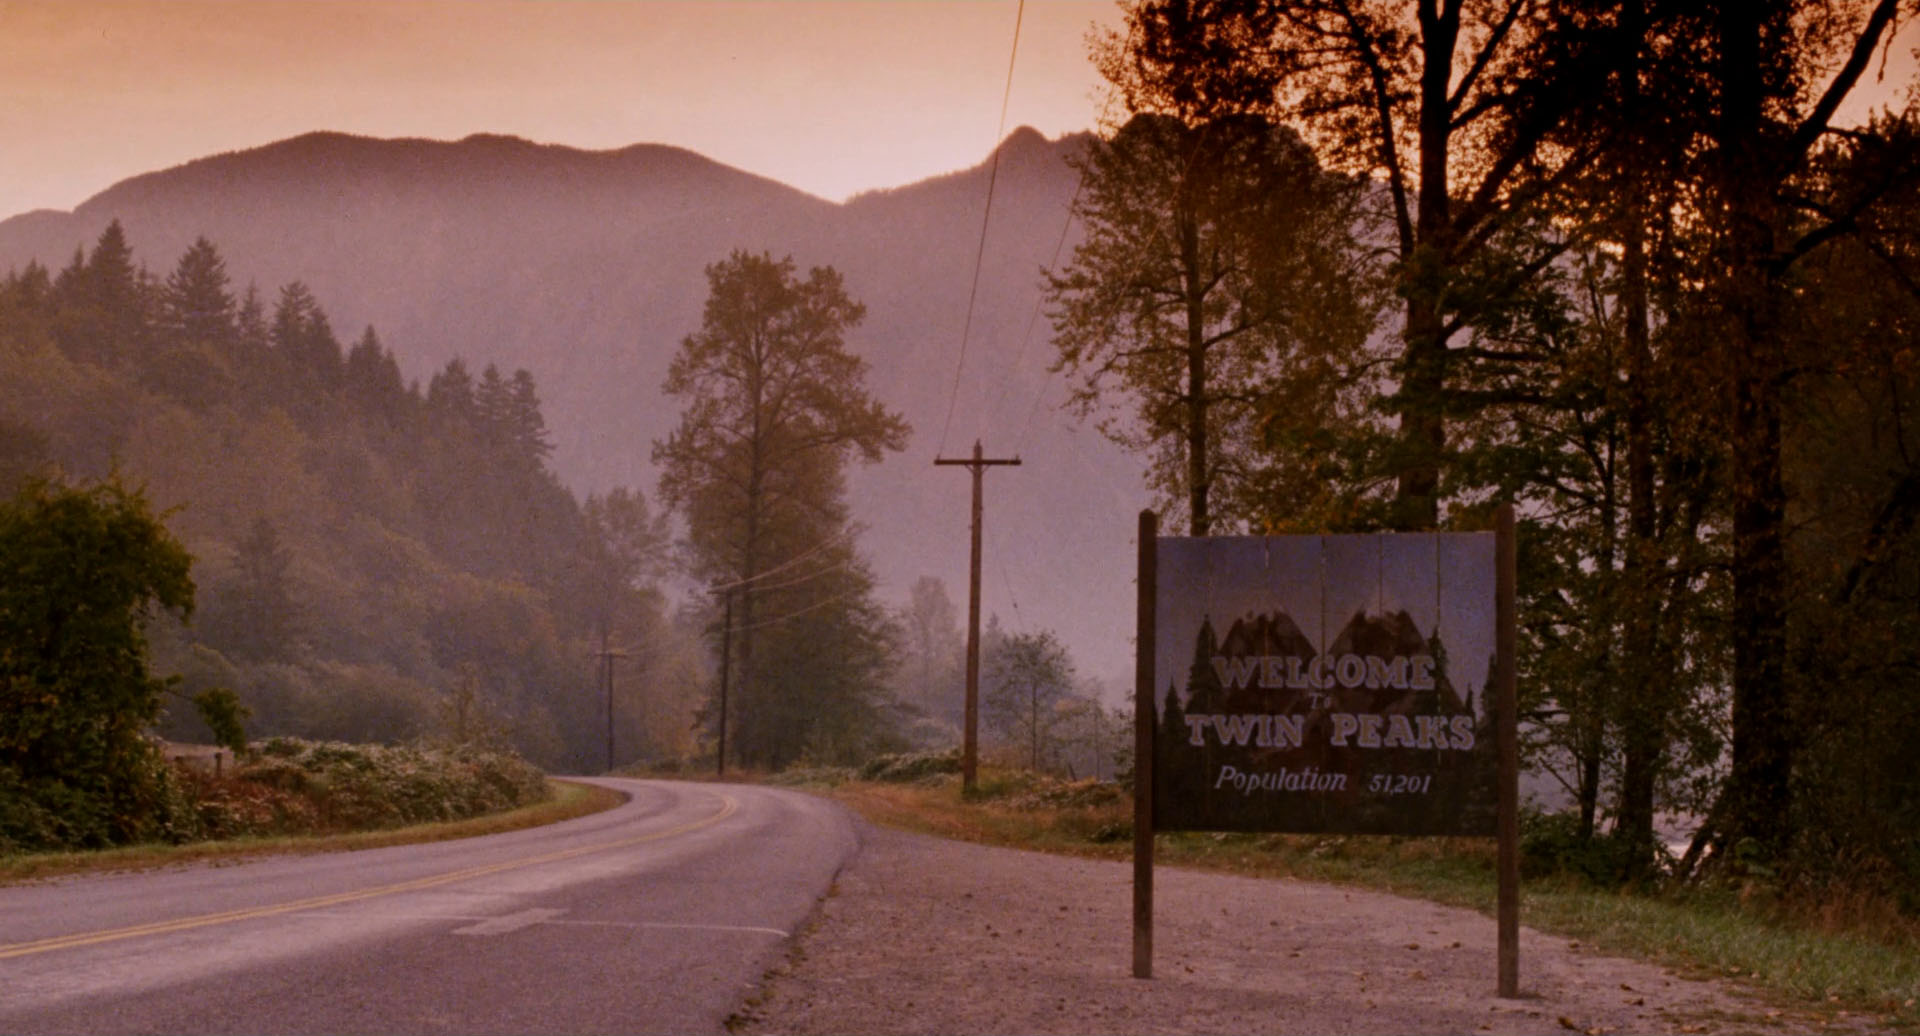 "Now that you've made it through some of David's films I'm gonna go ahead and leave you with one of his more ""mainstream"" contributions. Twin Peaks has pretty much influenced any slightly surreal show you see on TV today like Black Mirror, Atlanta, and the X-Files. It's with Twin Peaks that Lynch allows you the furthest in depth look at the characters he usually only presents to you for 2 hours. This connection you build with the citizens of Twin Peaks lets David manipulate you on an even deeper, personal level and for first time Lynch viewers, it hits home hard. I'd probably like to recommend this at the top of the Lynch journey, but seeing as it's a full-on show and not a film I figure it's best to leave it here with you at the end, because after Twin Peaks you'll pretty much be up for to watch anything David has his name attached to, if you're not already. Twin Peaks is about the murder of a homecoming queen in a small Pacific Northwestern town called Twin Peaks. It's here where FBI Agent Dale Cooper discovers that there's much more to the small town of Twin Peaks than meets the eye. It originally aired in the early 90's and in case you've been living under a rock for the last 2 years, they came back for a return season last summer!"